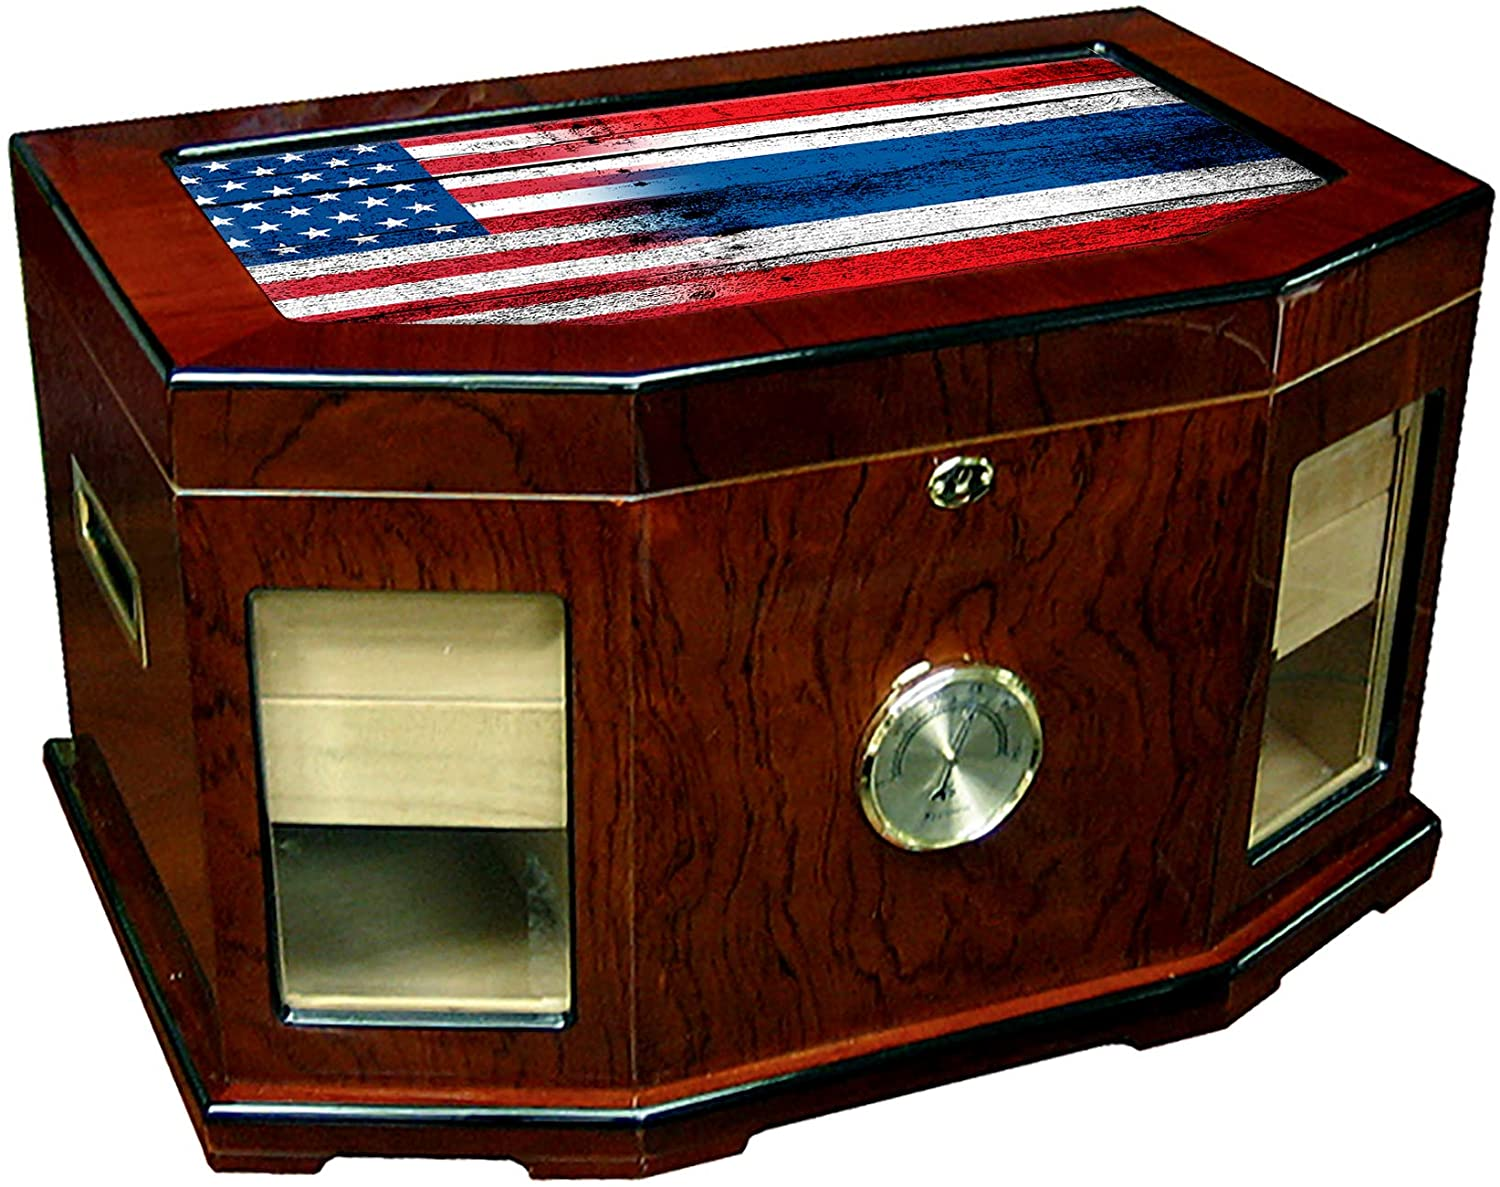 Large Premium Desktop Humidor - Glass Top - Flag of Thailand (Thai) - Wood with USA Flag - 300 Cigar Capacity - Cedar Lined with Two humidifiers & Large Front Mounted Hygrometer.